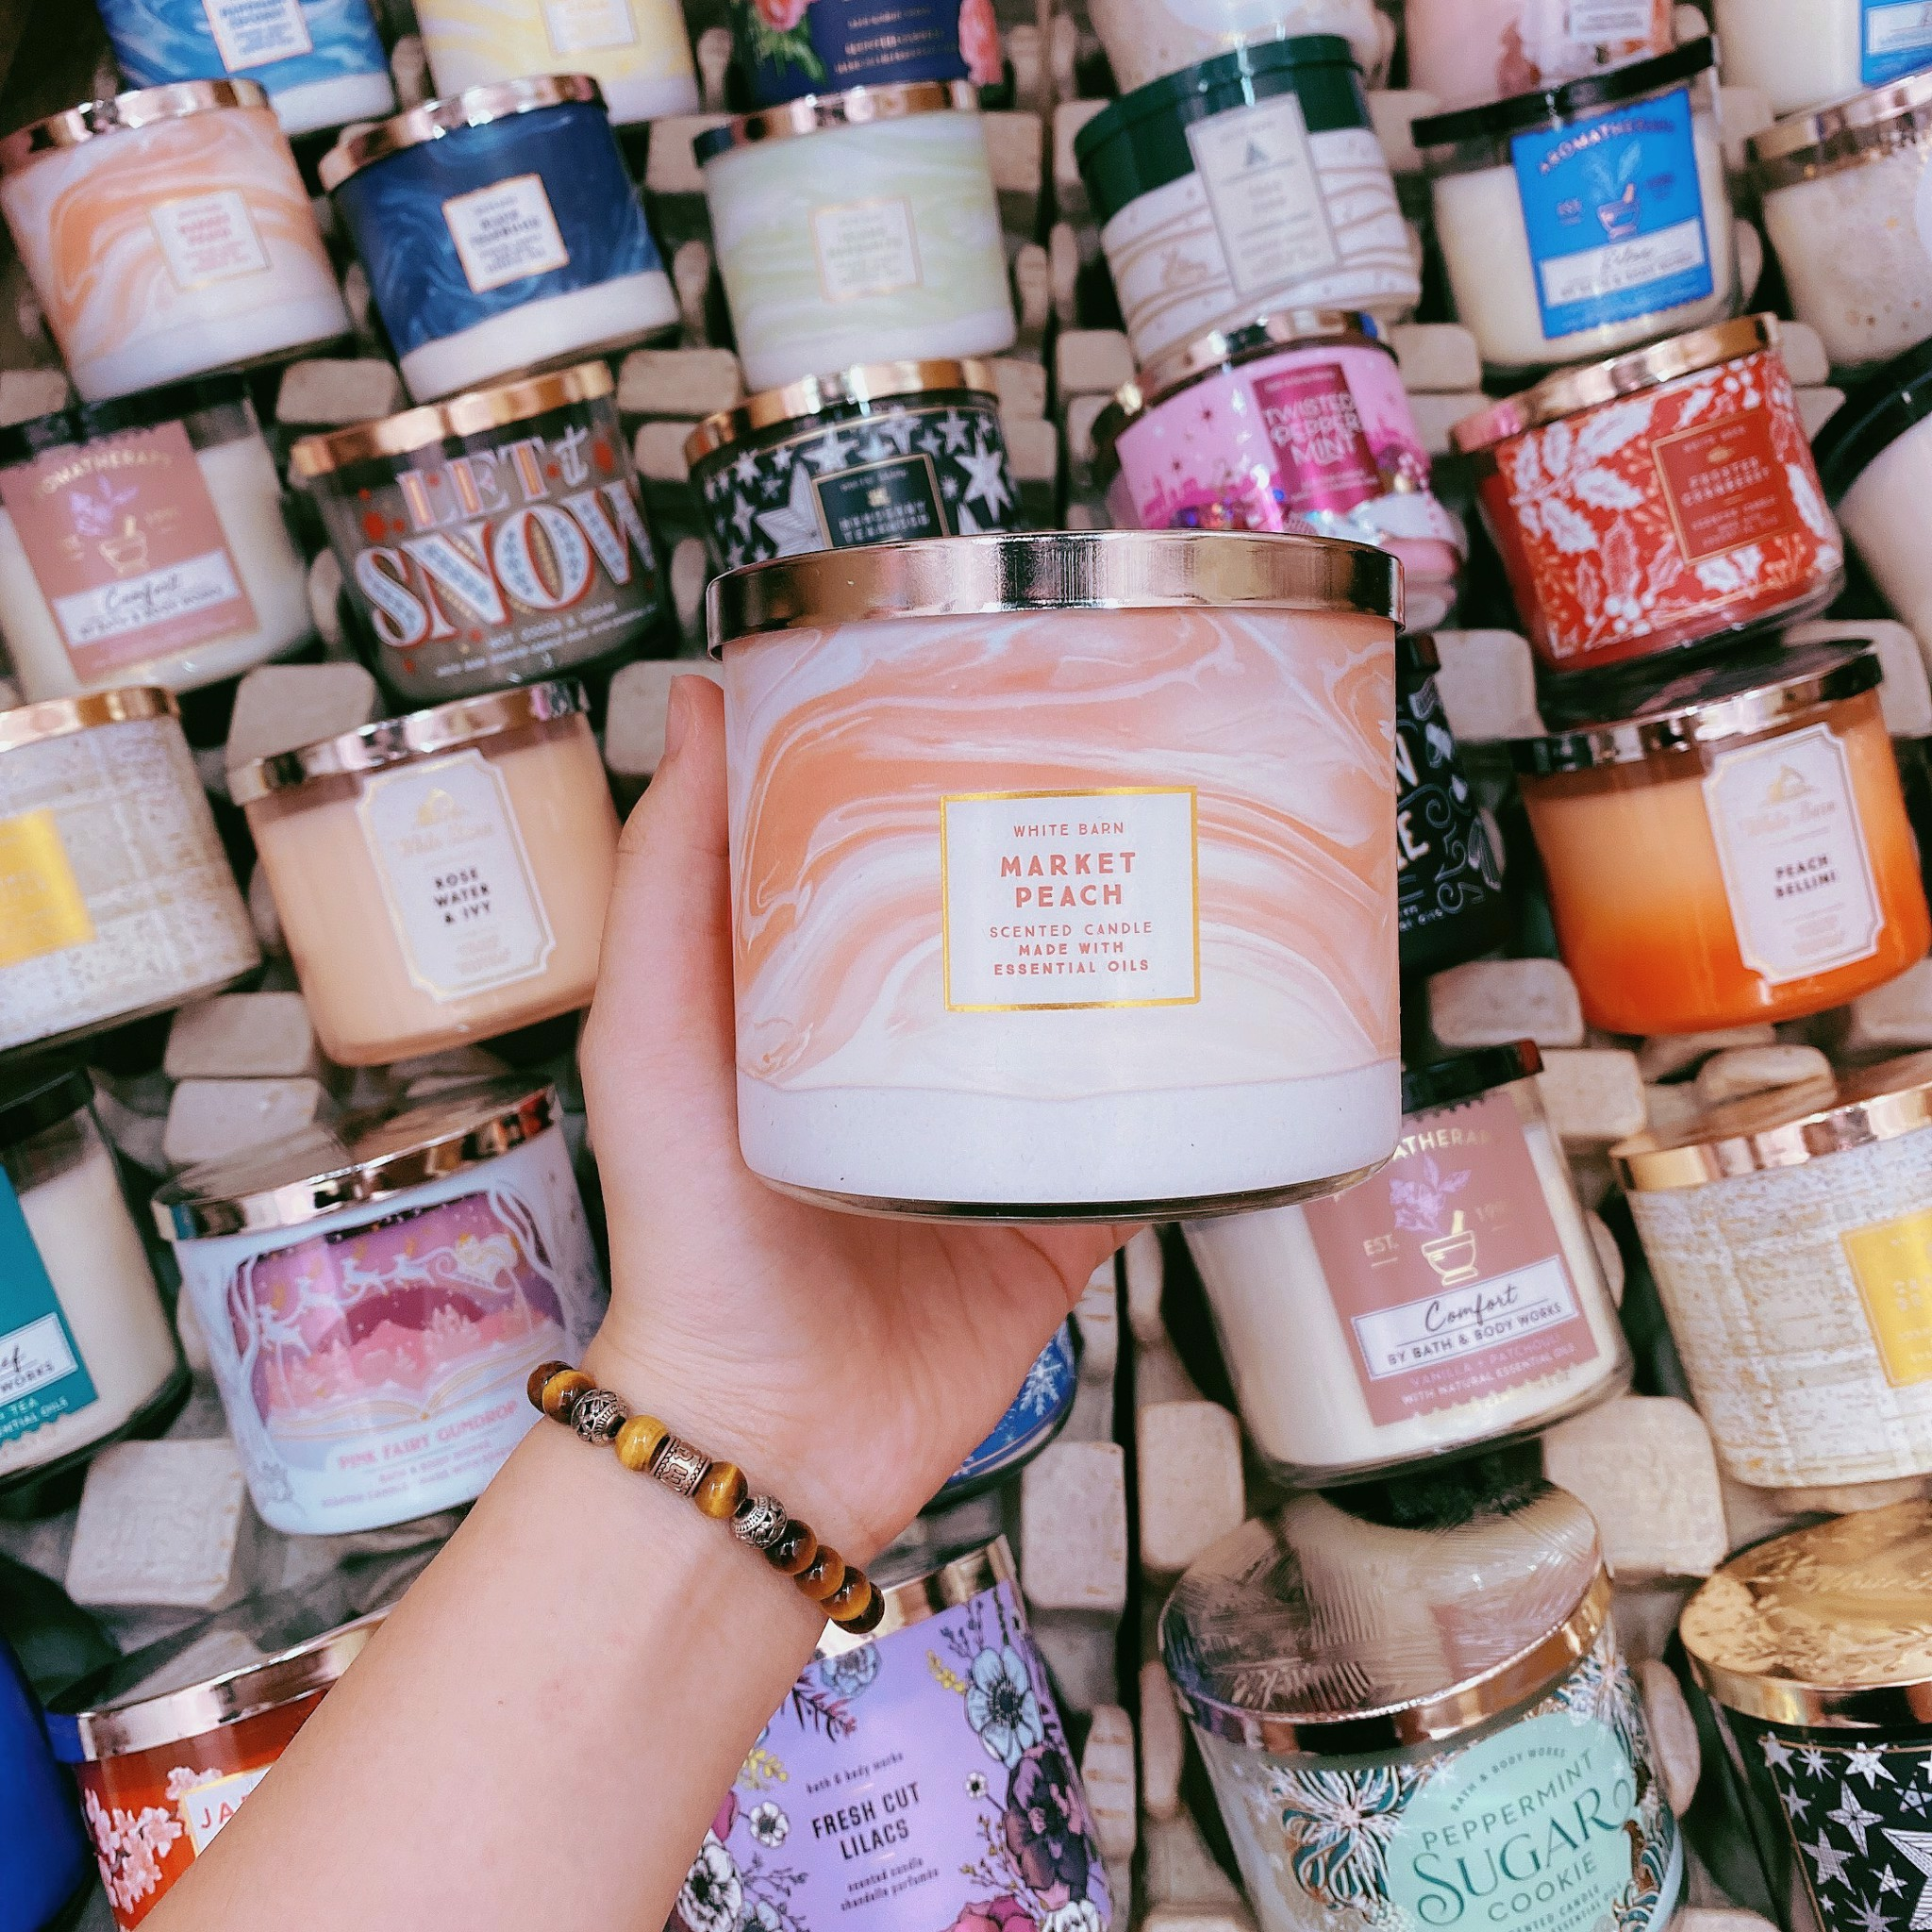 Nến Thơm 3 Bấc Bath & Body Works Market Peach Scented Candle